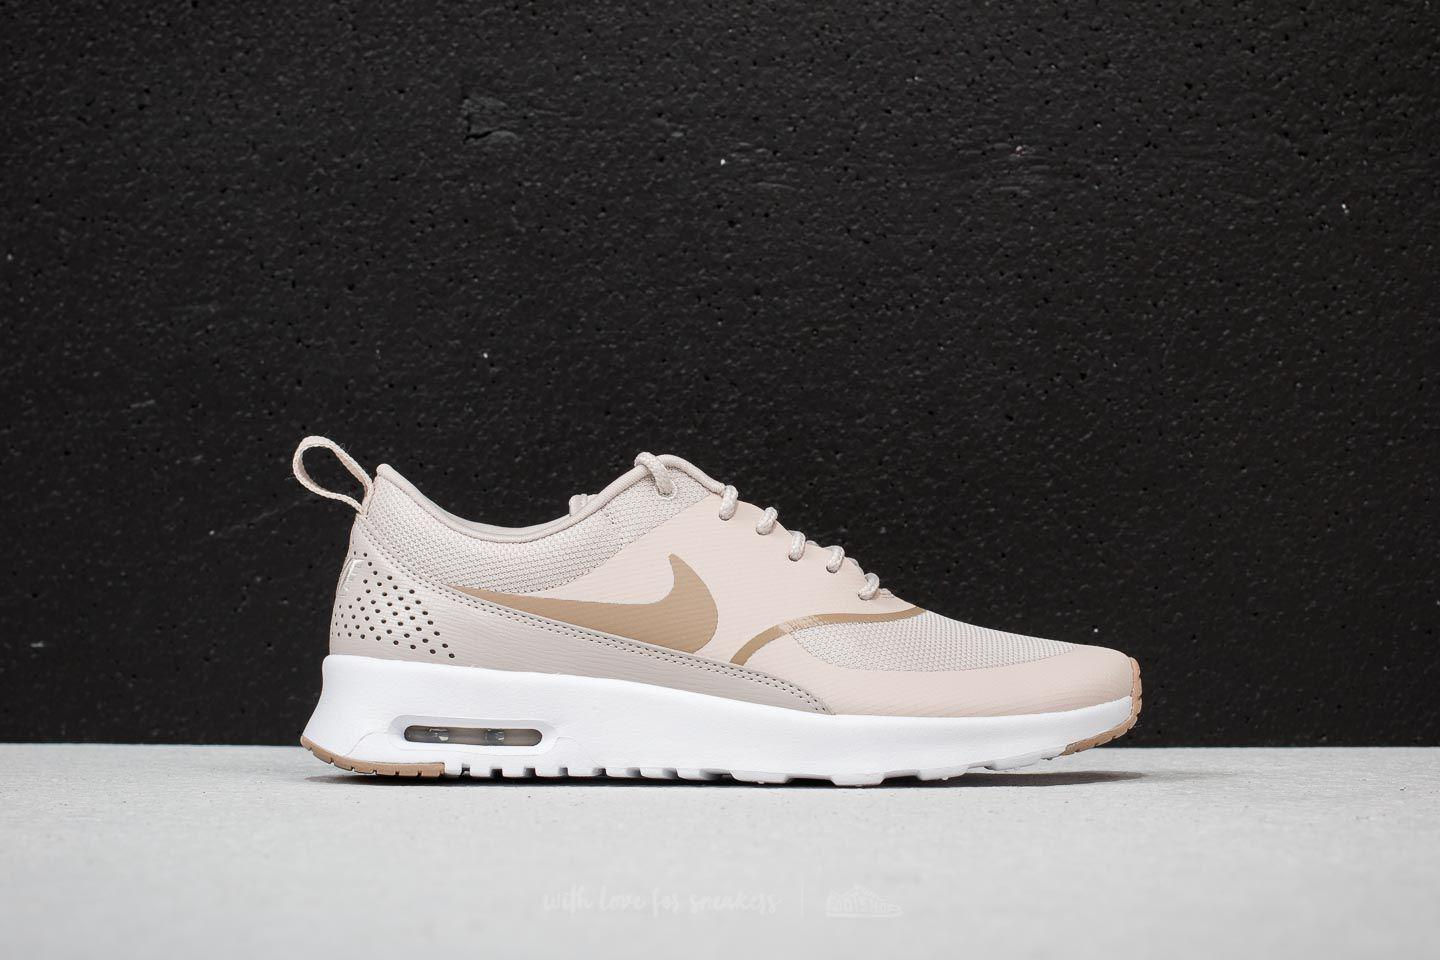 eb21c9d4f0ec3 Gallery. Previously sold at: Footshop · Women's Nike Air Max Sneakers